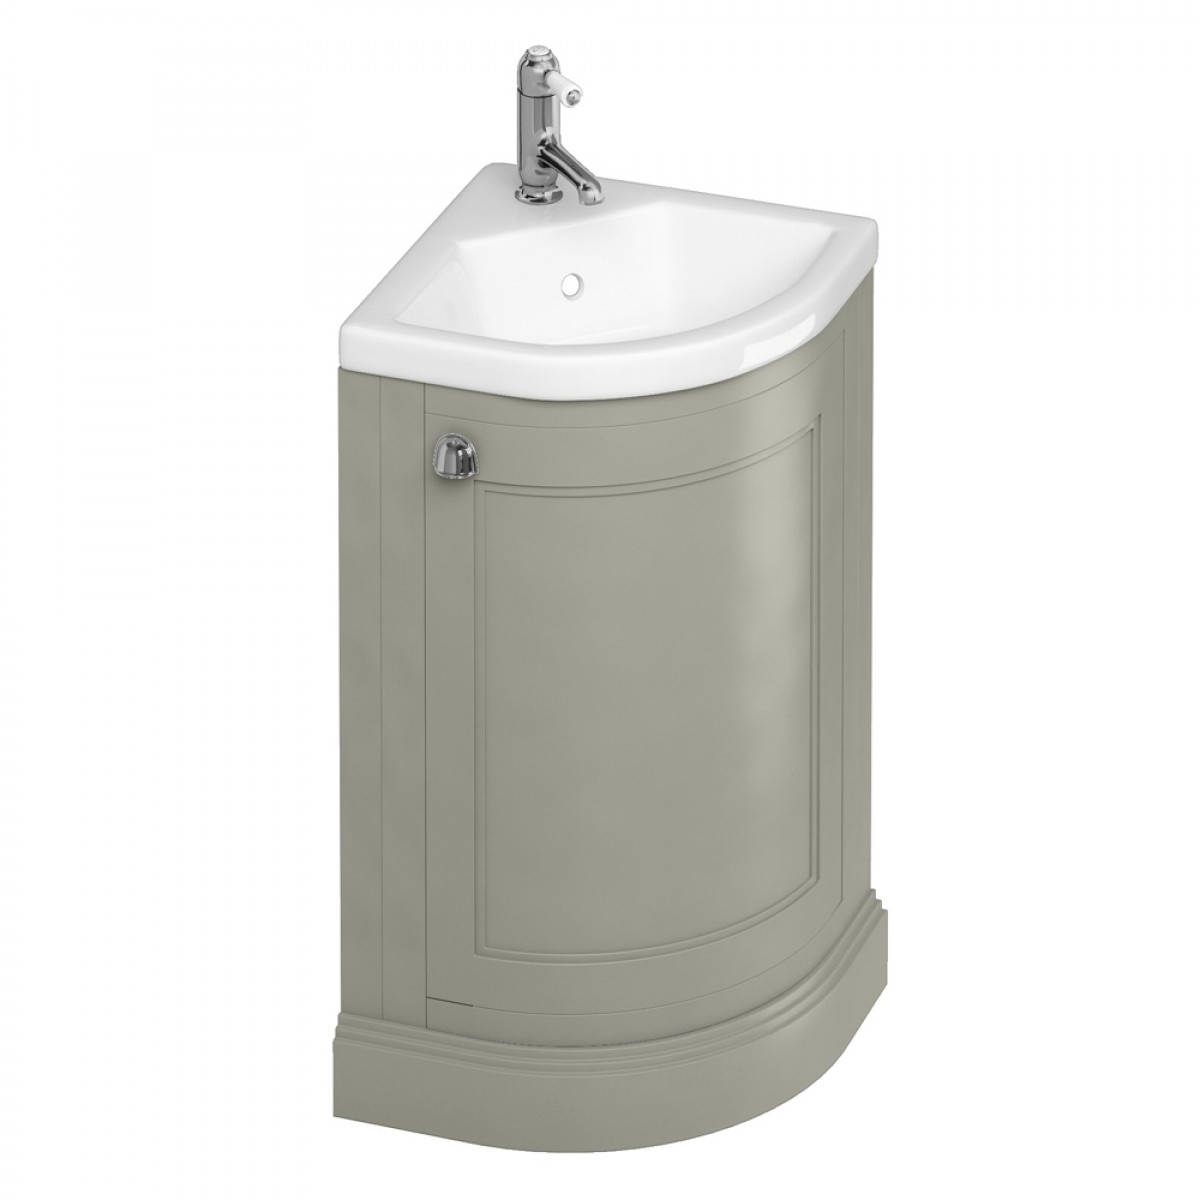 burlington freestanding corner cloakroom vanity unit XGKOAZY